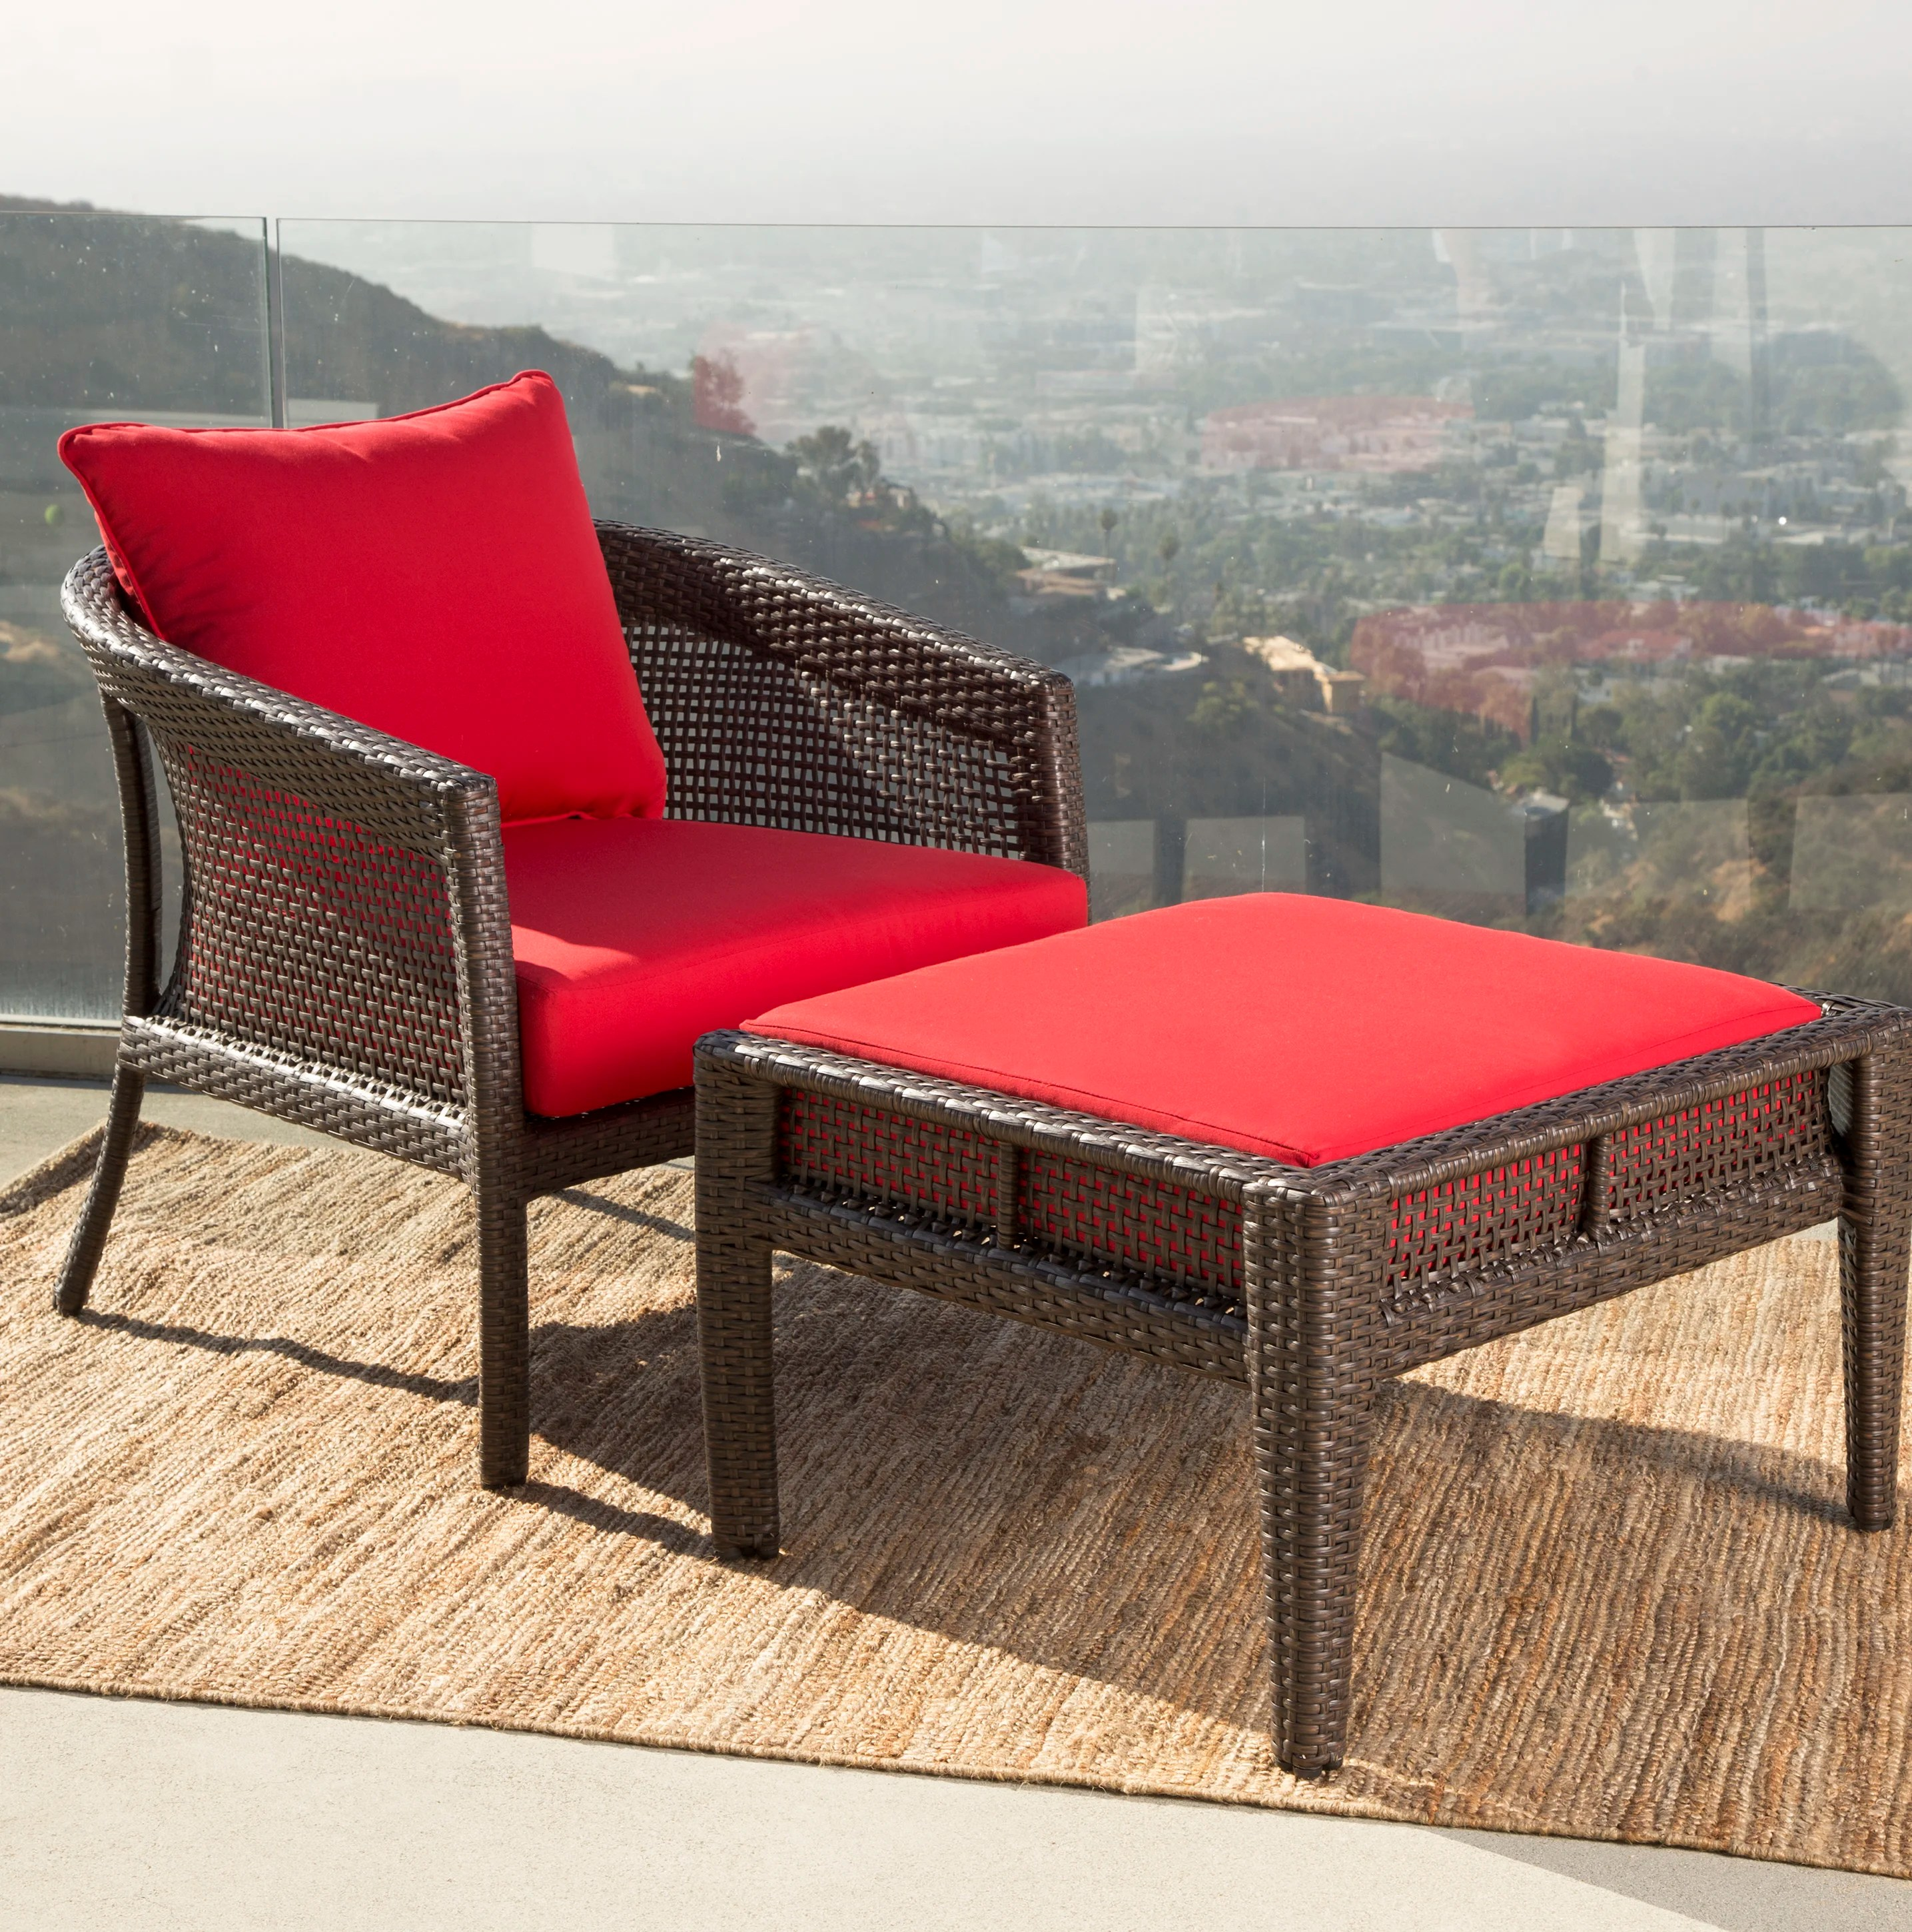 Red Patio Chairs Fincham Sunbrella Red Outdoor Wicker Patio Chair